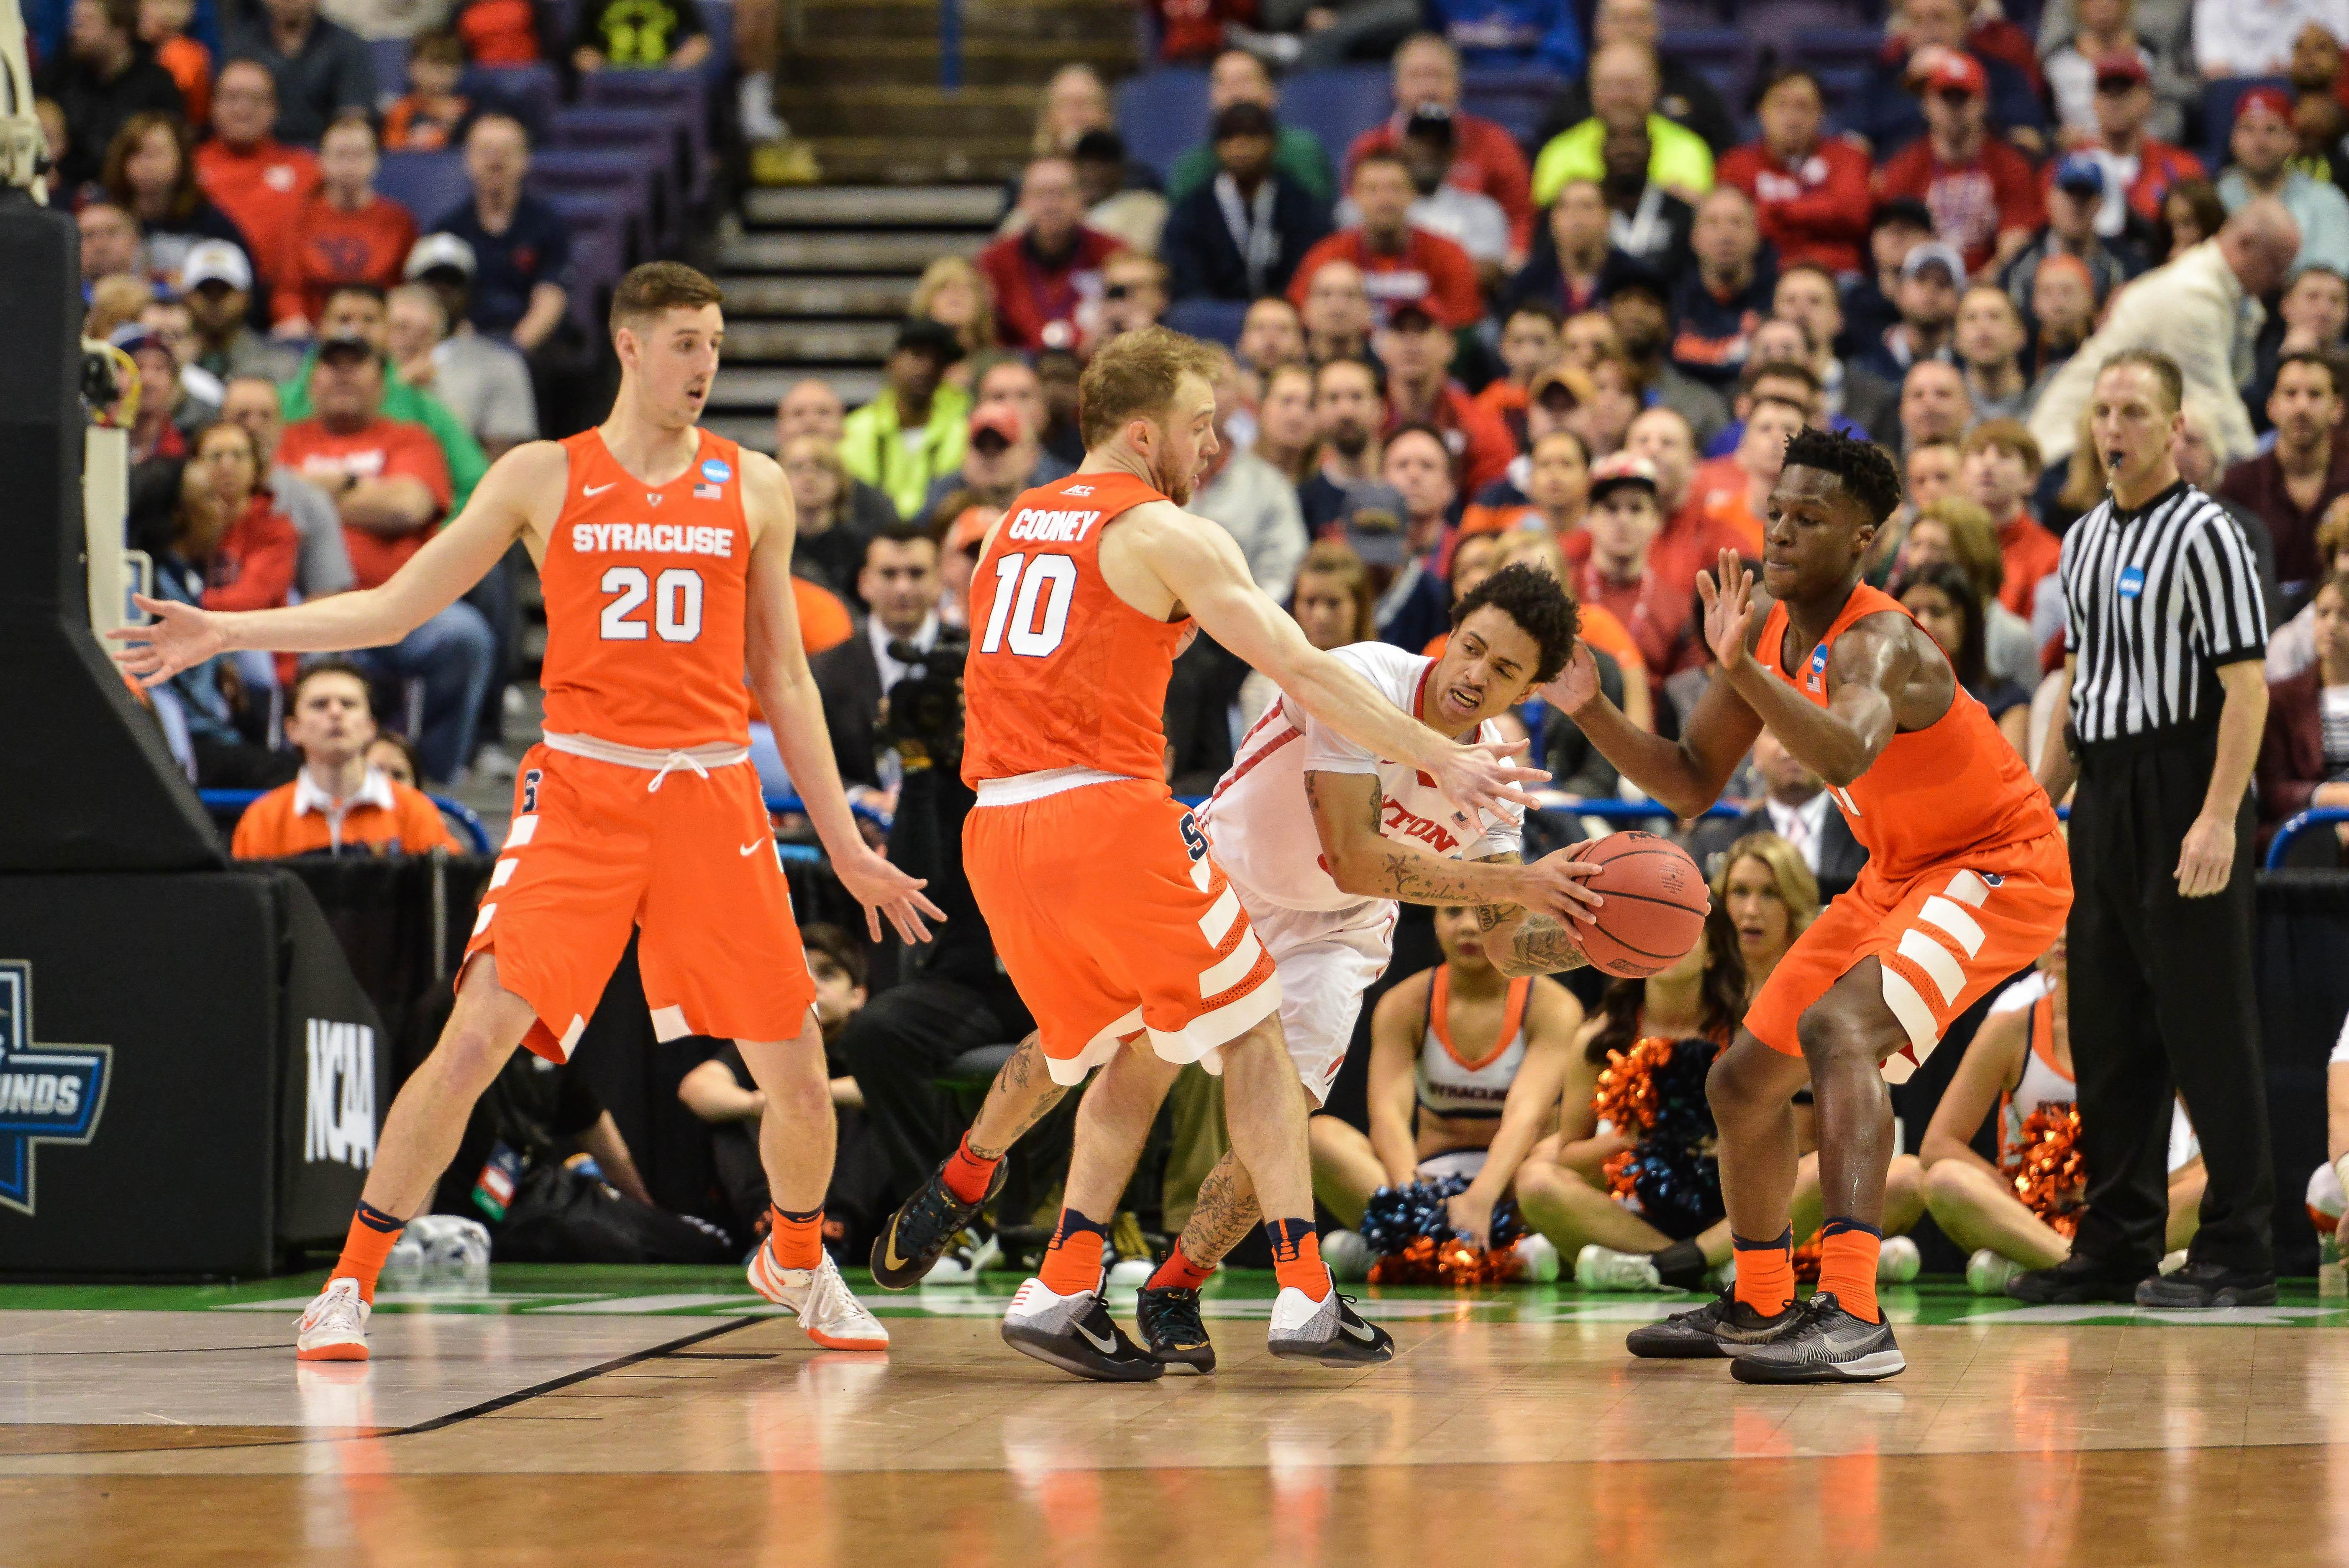 Famed Syracuse 2 3 Zone Defense Gives Opponents Fits The Spokesman